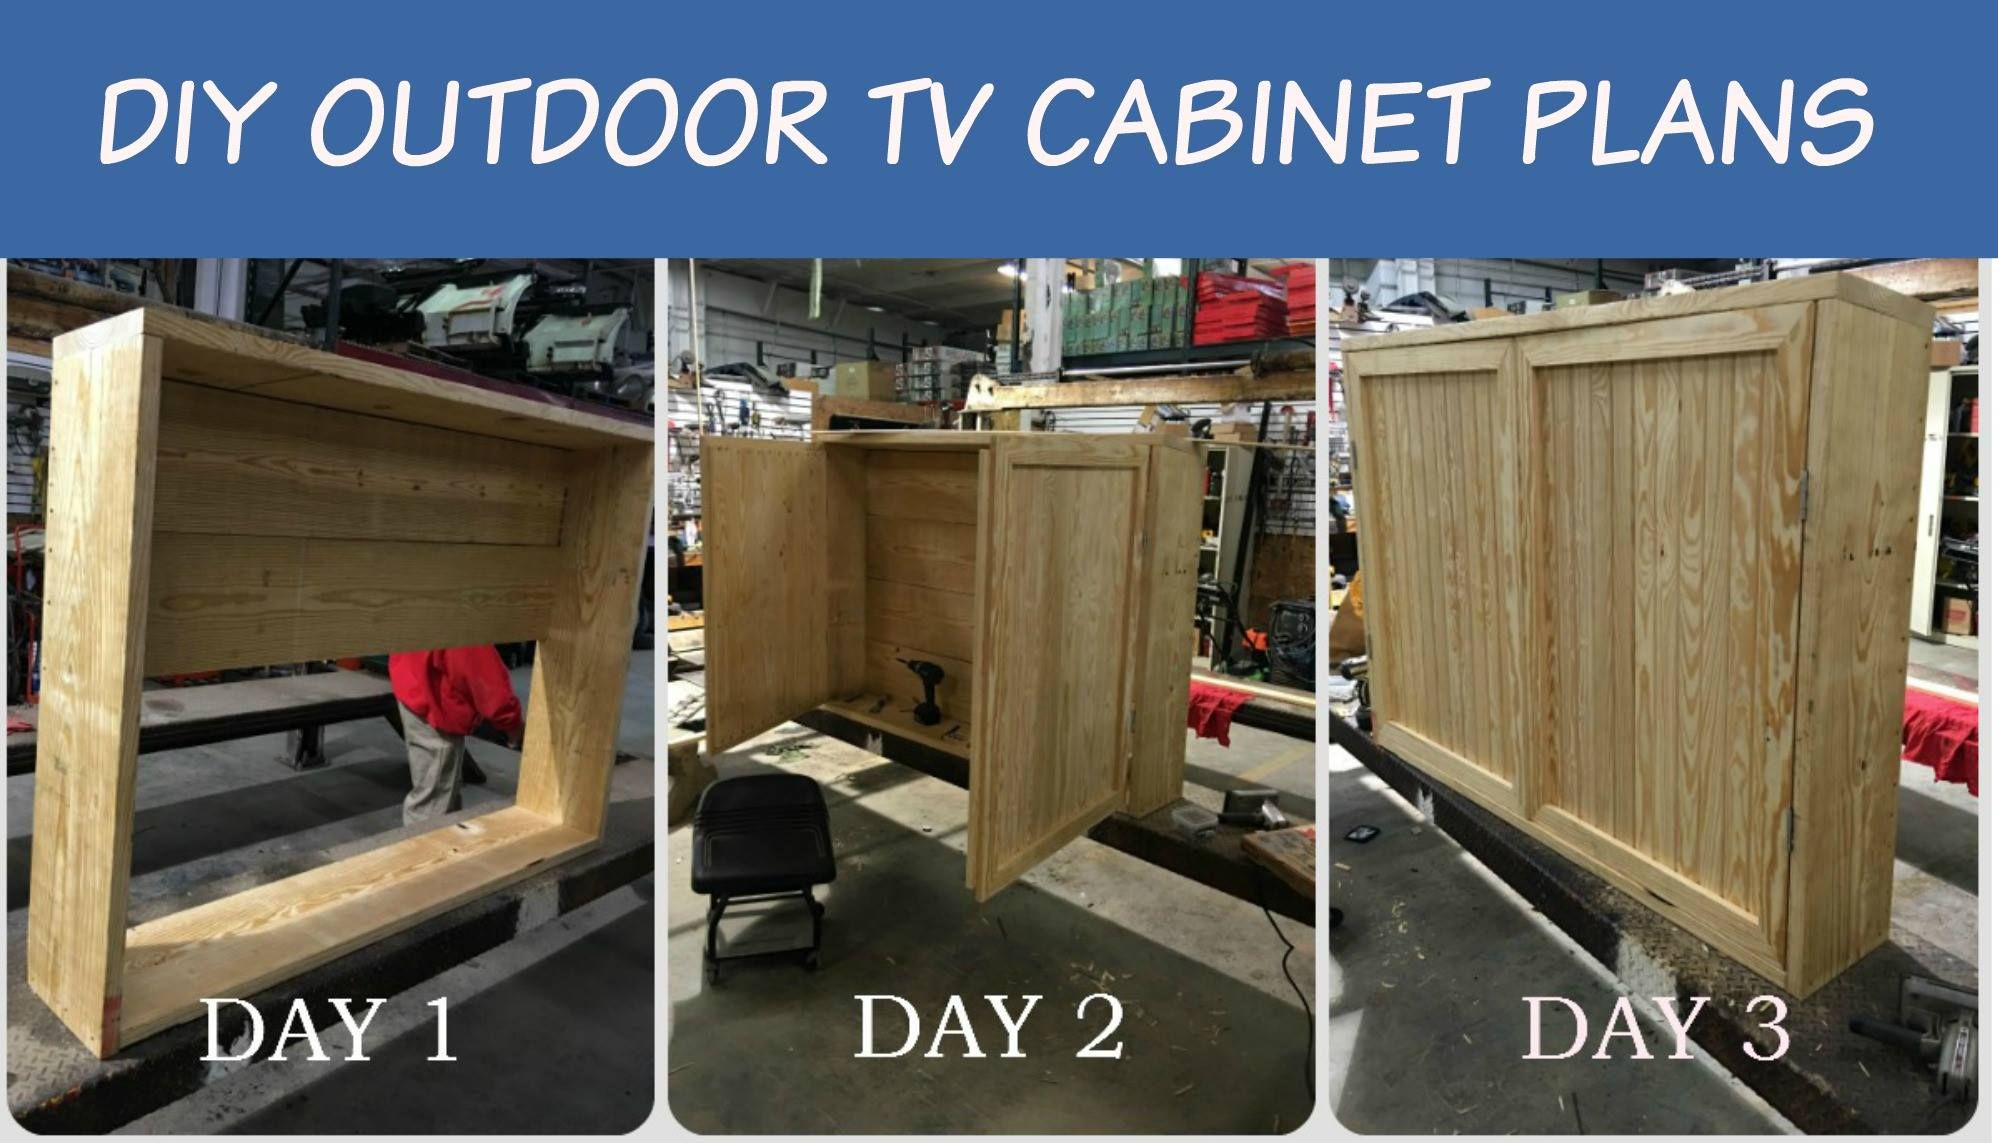 This Diy Er Is Ready To Put The Finishing Touches On His Outdoor Tv Cabinet It Typically Takes 3 Days Complete With These Able Easy Follow